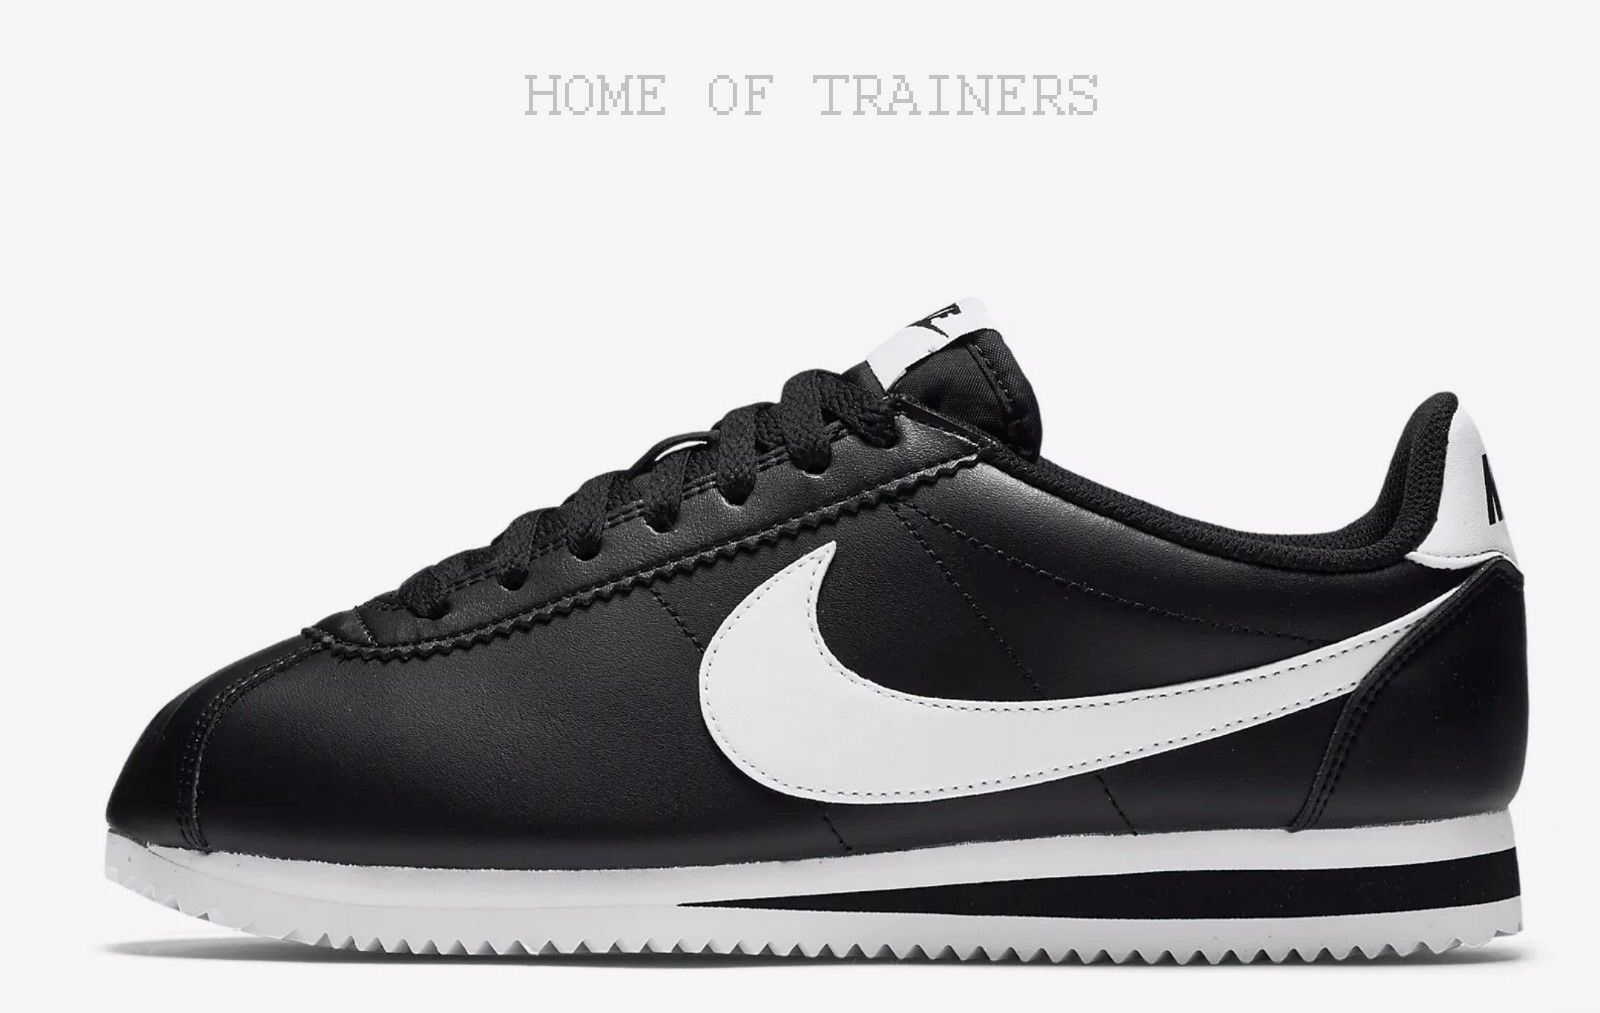 Nike Classic Cortez Black White White White White Girls Women's Trainers All Sizes 06e7eb